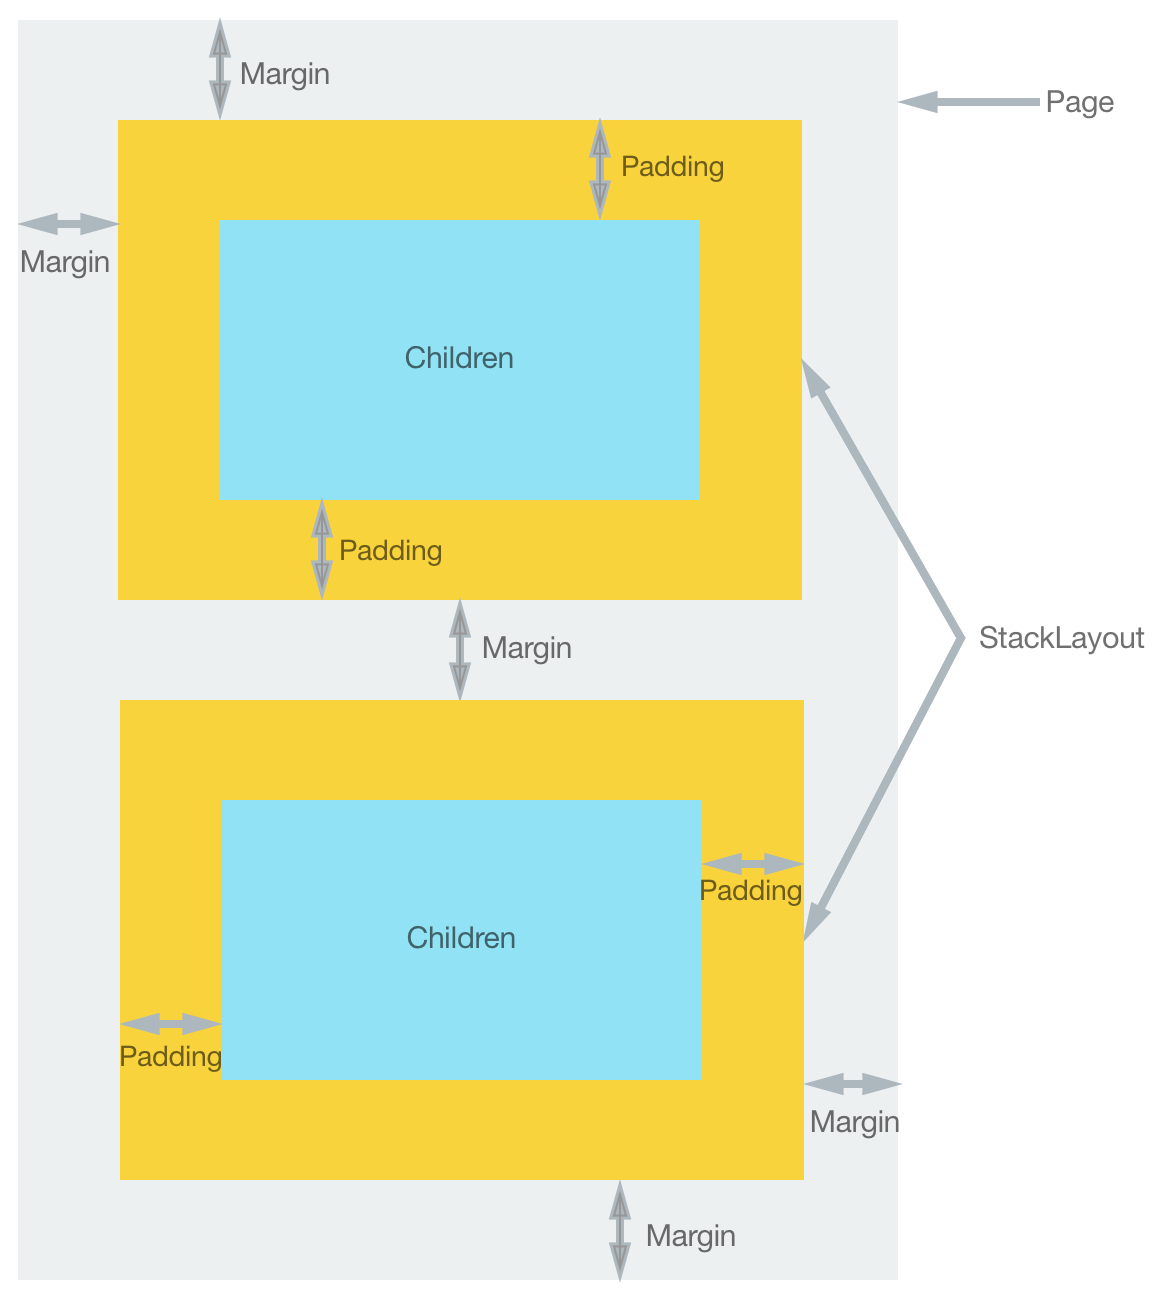 Margin and Padding - Xamarin | Microsoft Docs